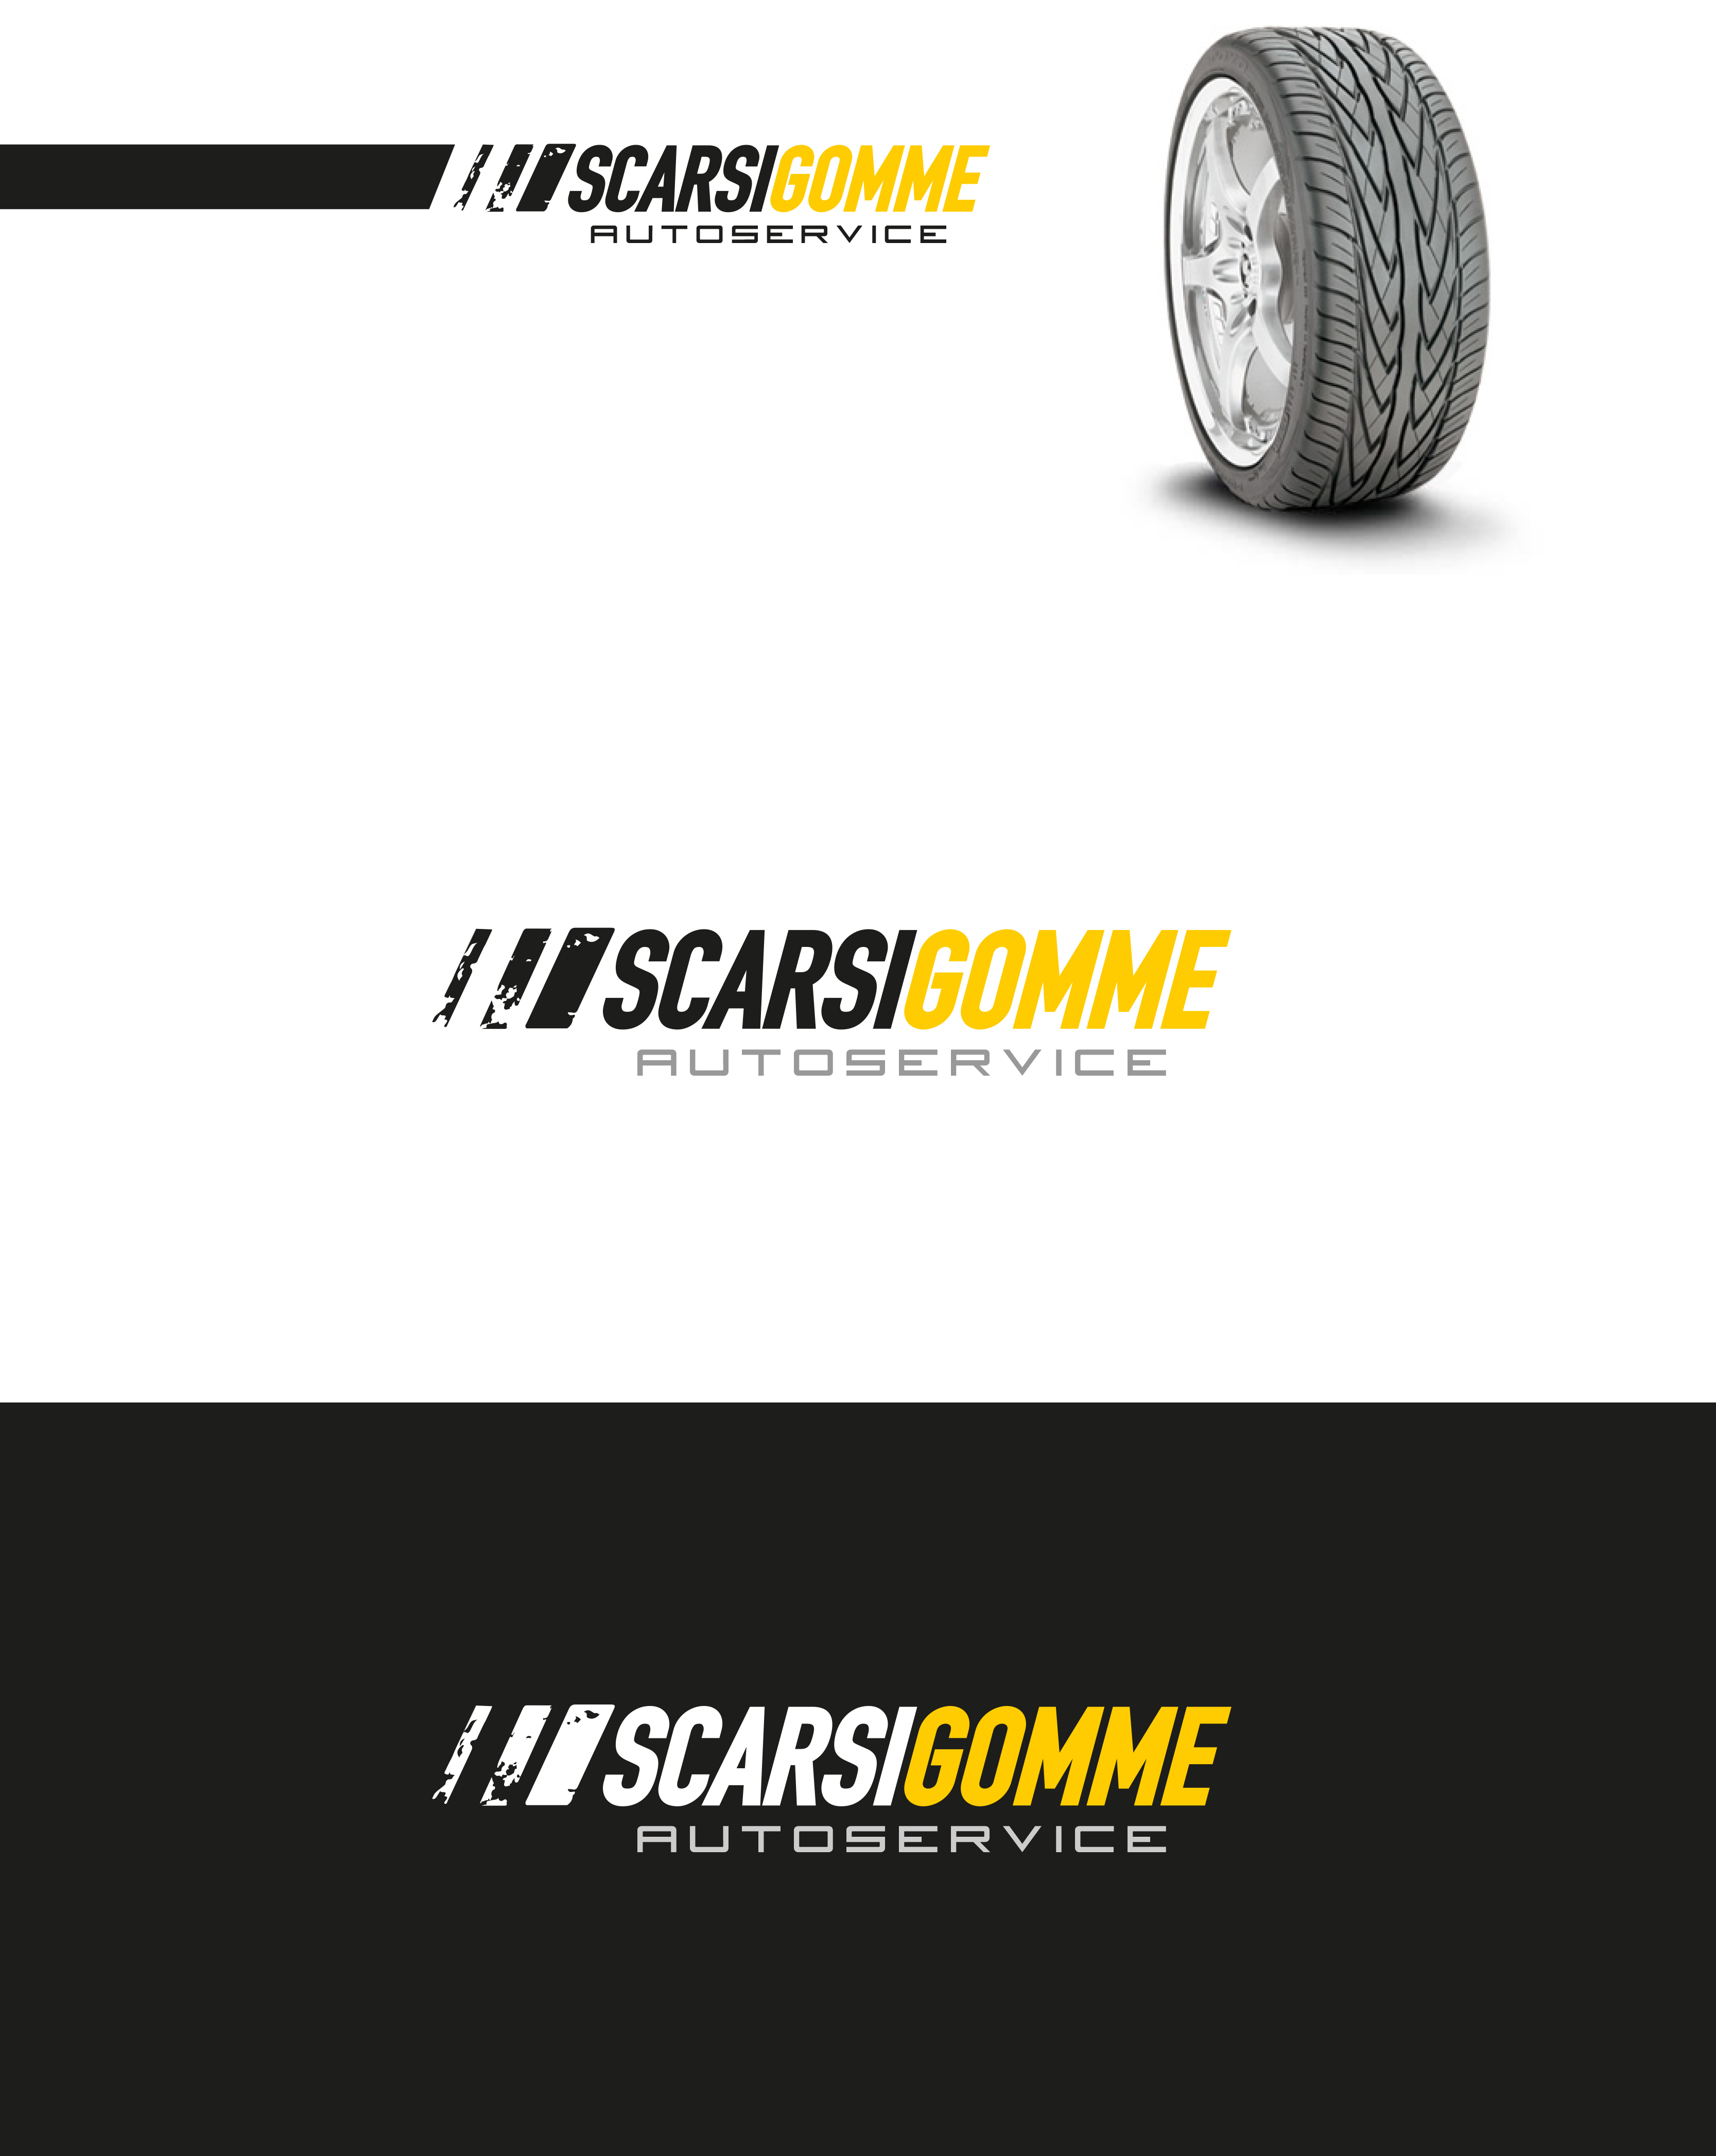 scarsi_gomme_1